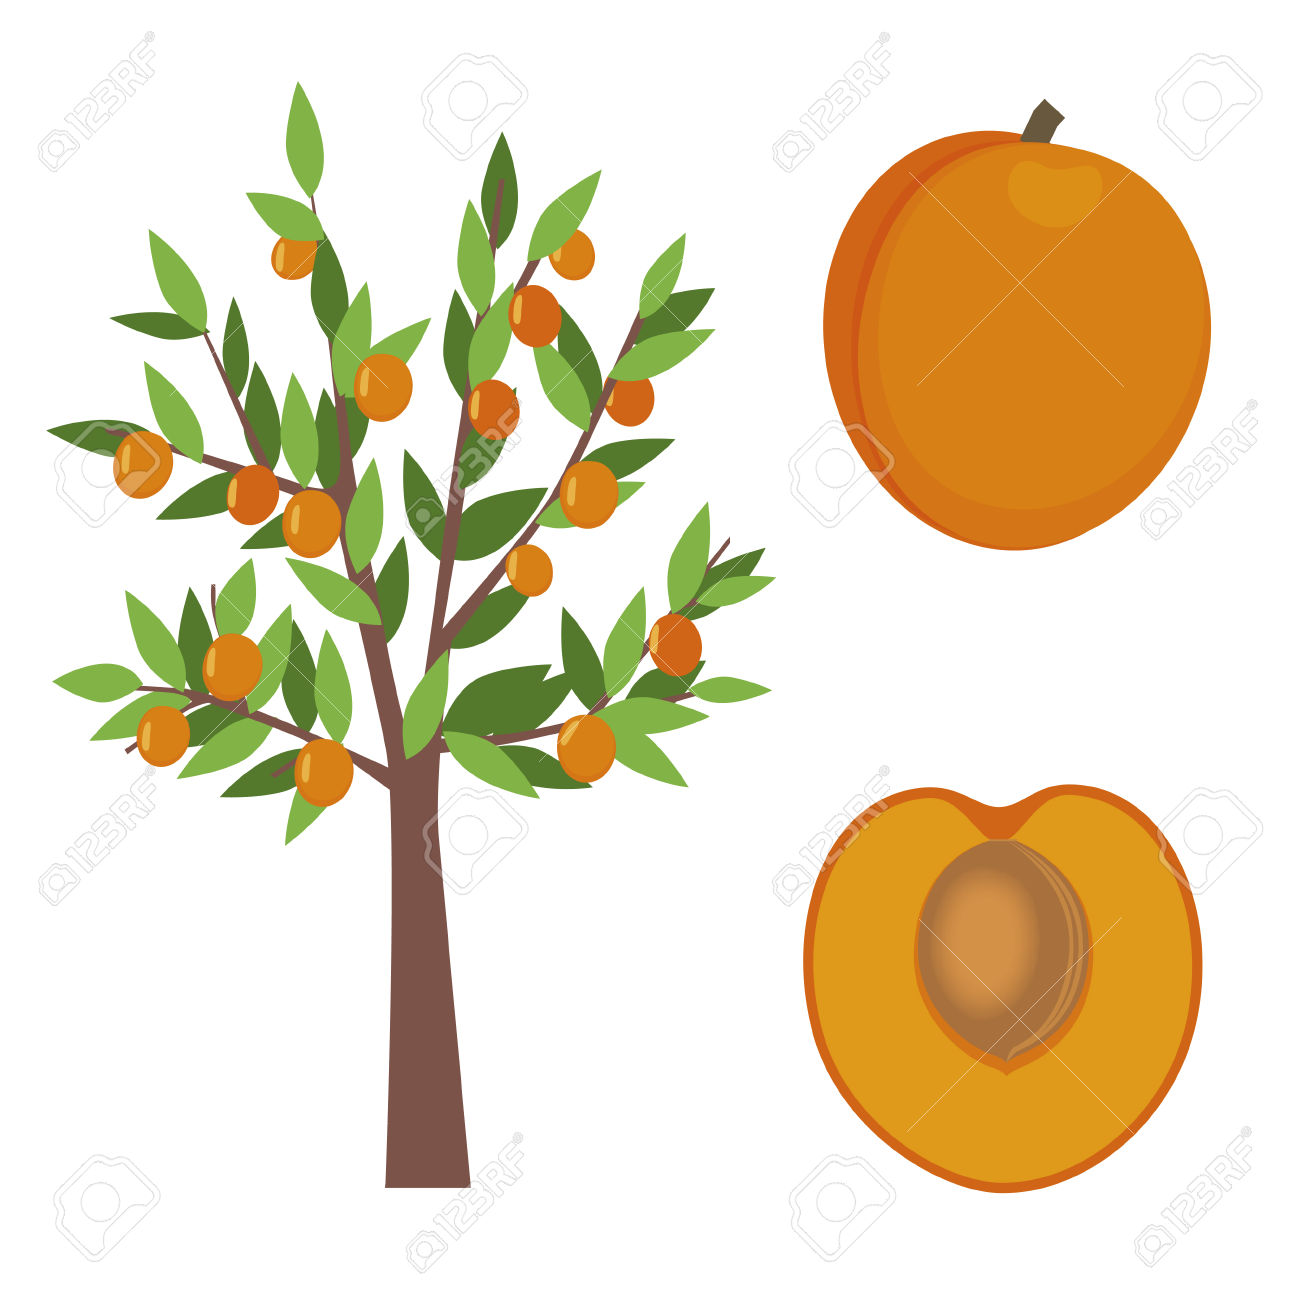 Apricot Tree Illustration Royalty Free Cliparts, Vectors, And.